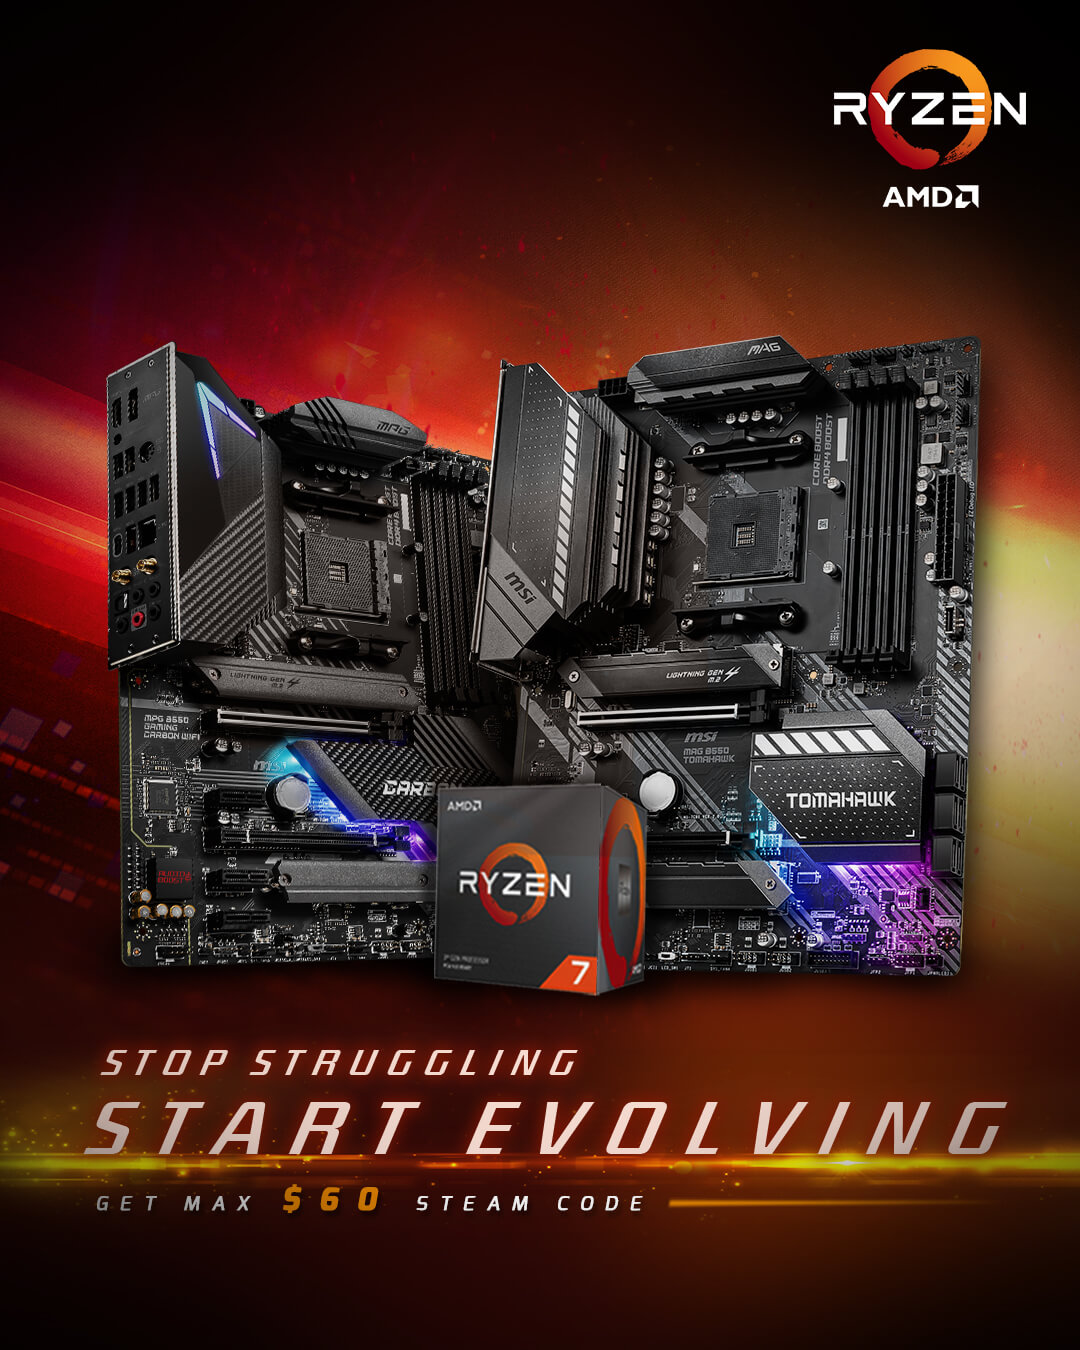 B550 + AMD CPU promotion